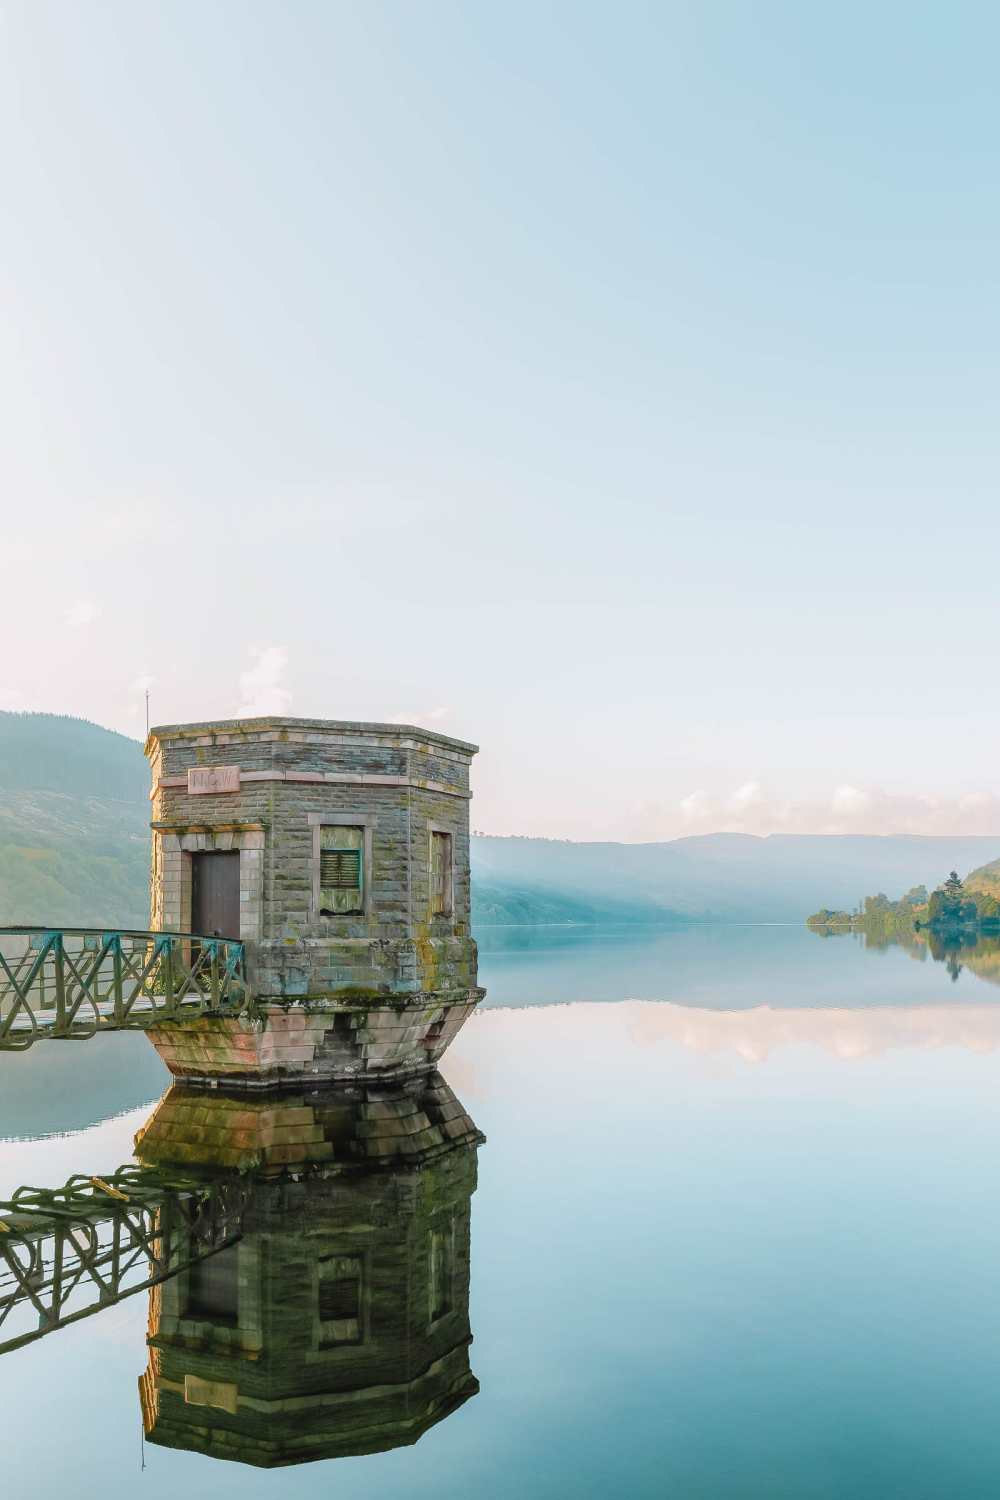 Talybont Reservoir in the Brecon Beacons